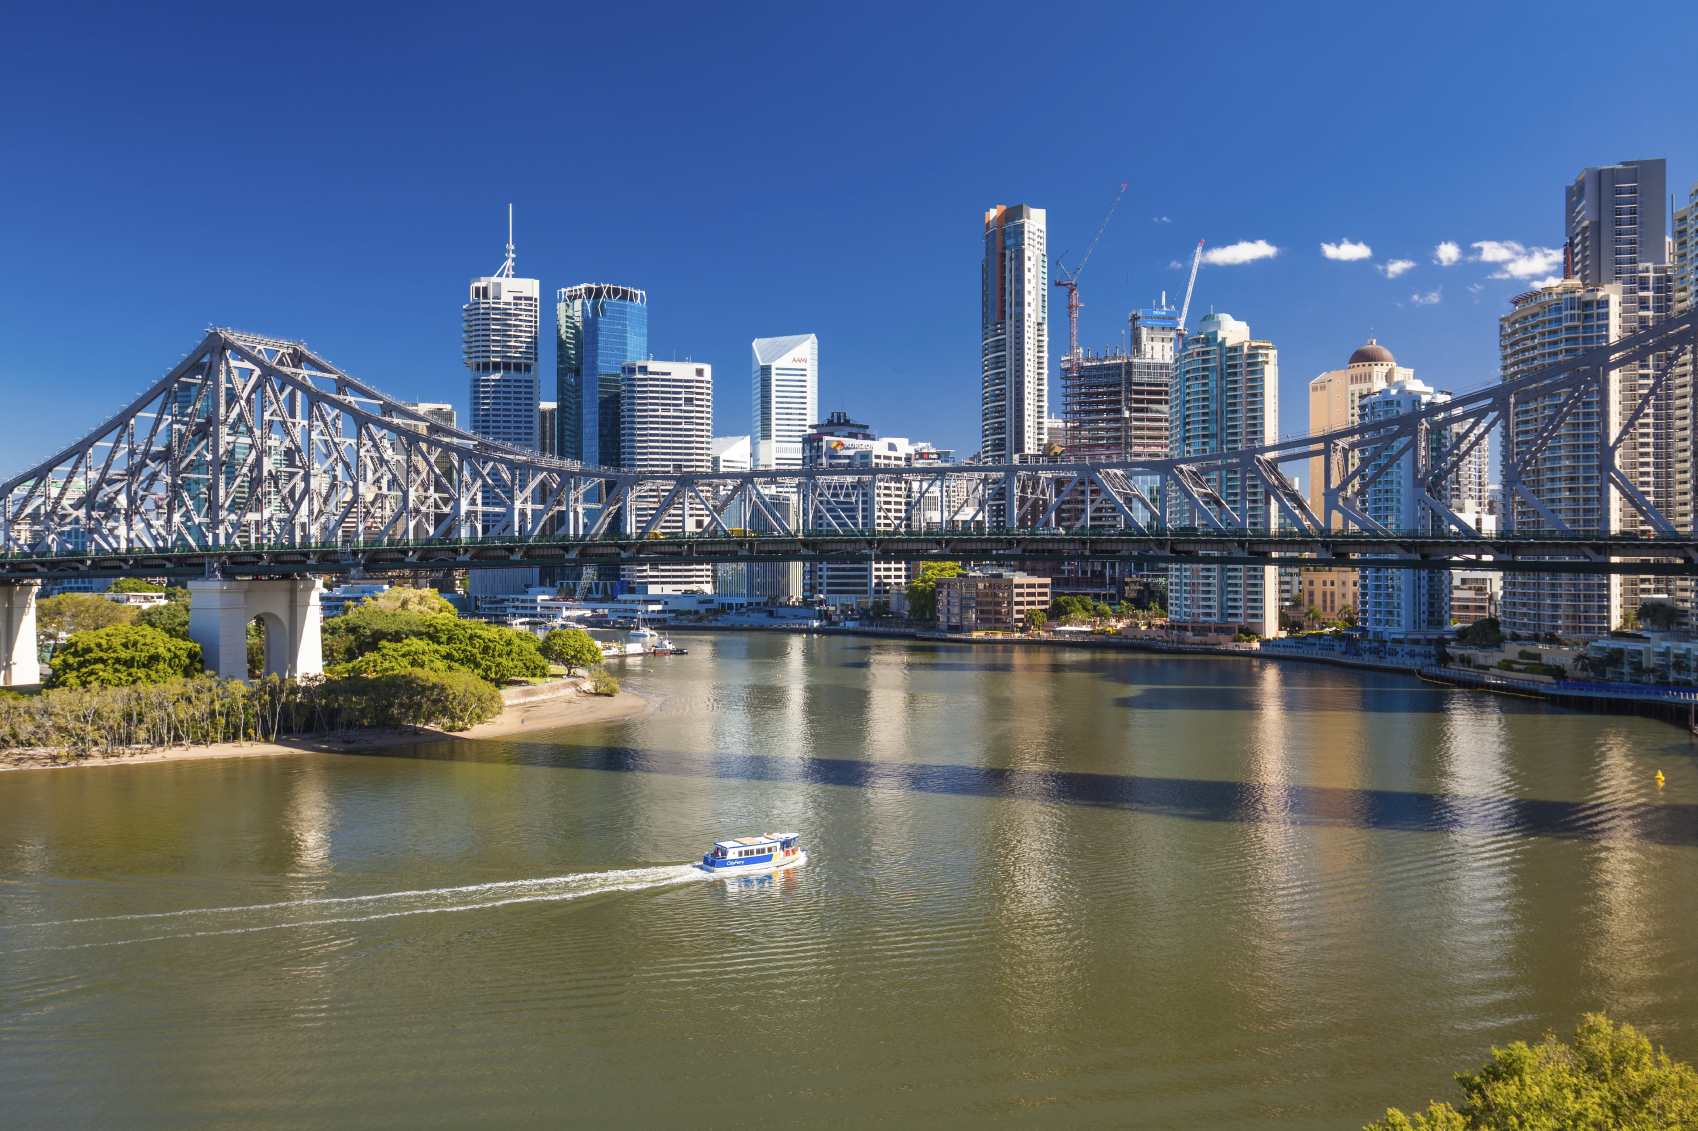 australia brisbane queensland - photo #7